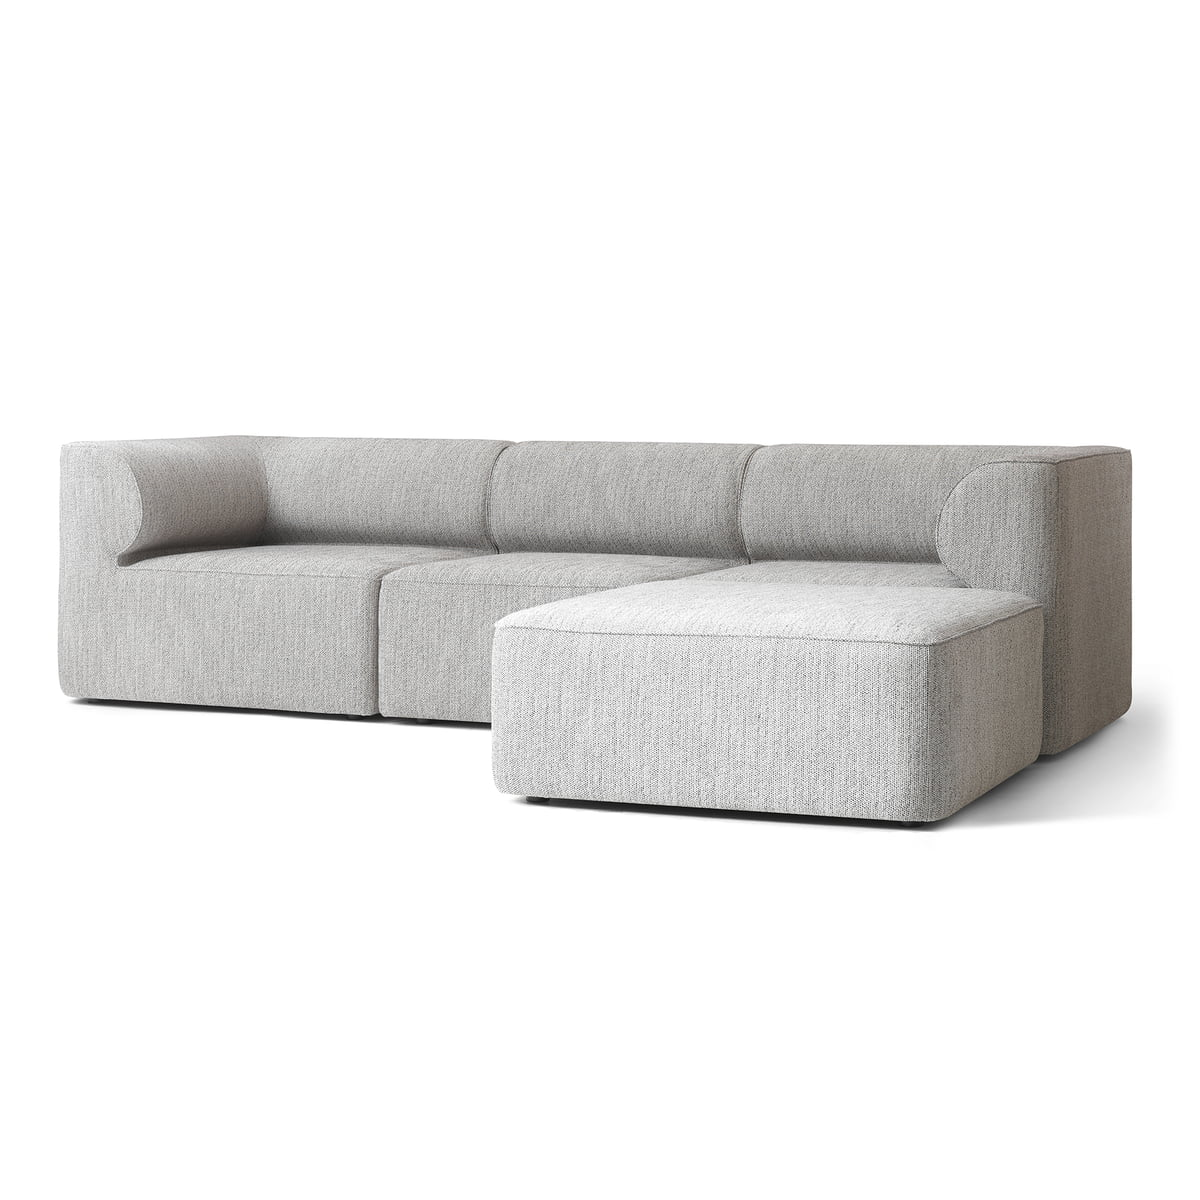 The Menu - Eave Modular Sofa in light grey